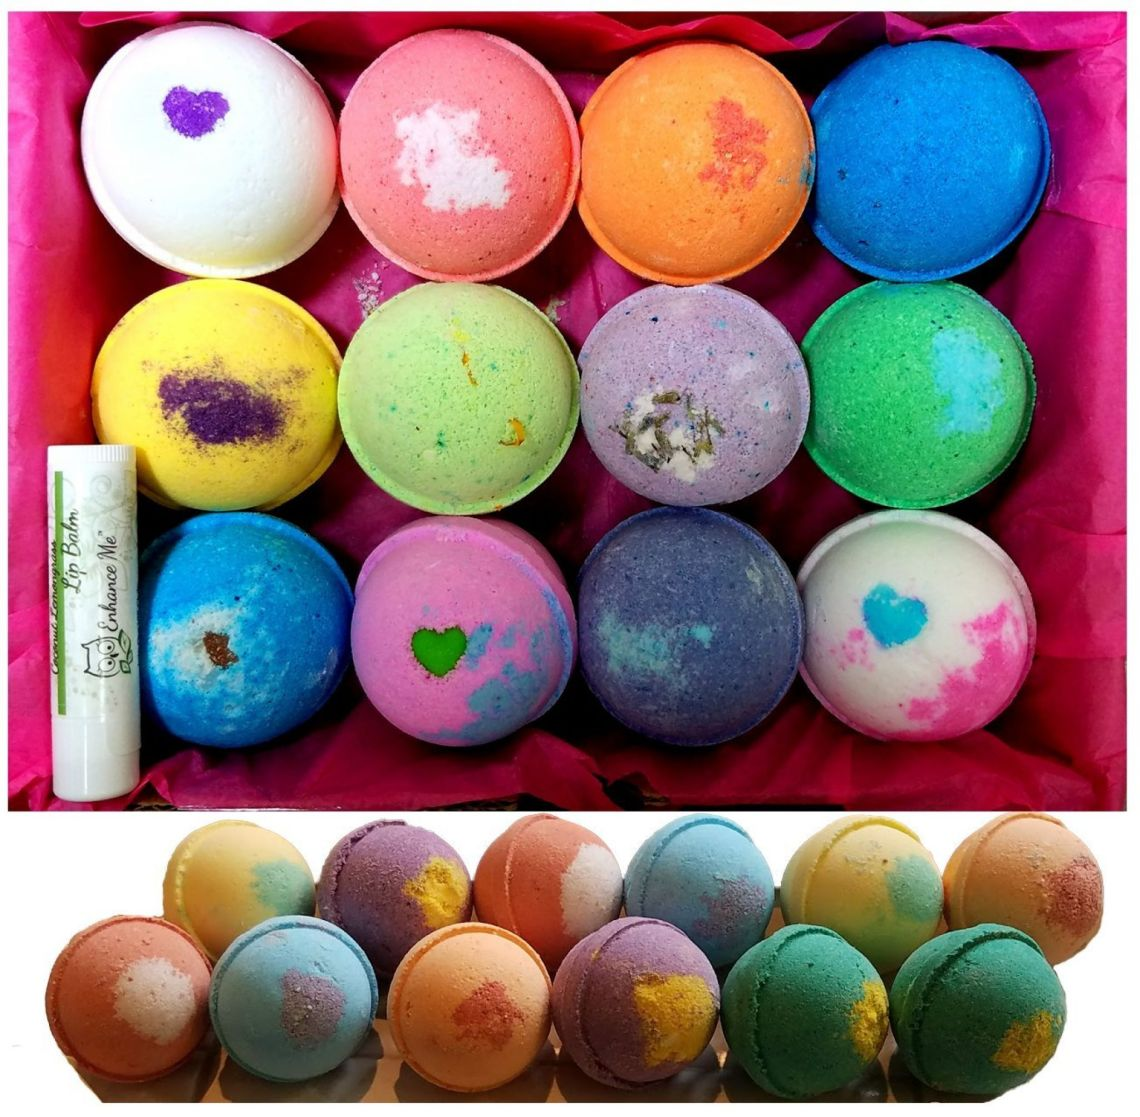 Amazon.com : Bath Bombs Gifts Set 12 Pack by Cicinady - with Essential Oil, Coco Butter Great For Dry Skin Moisturize, Relaxation Yoga and Fun - Premium Handmade Spa Bath Bomb for Kids Girlfriend Women Wife Girls : Beauty